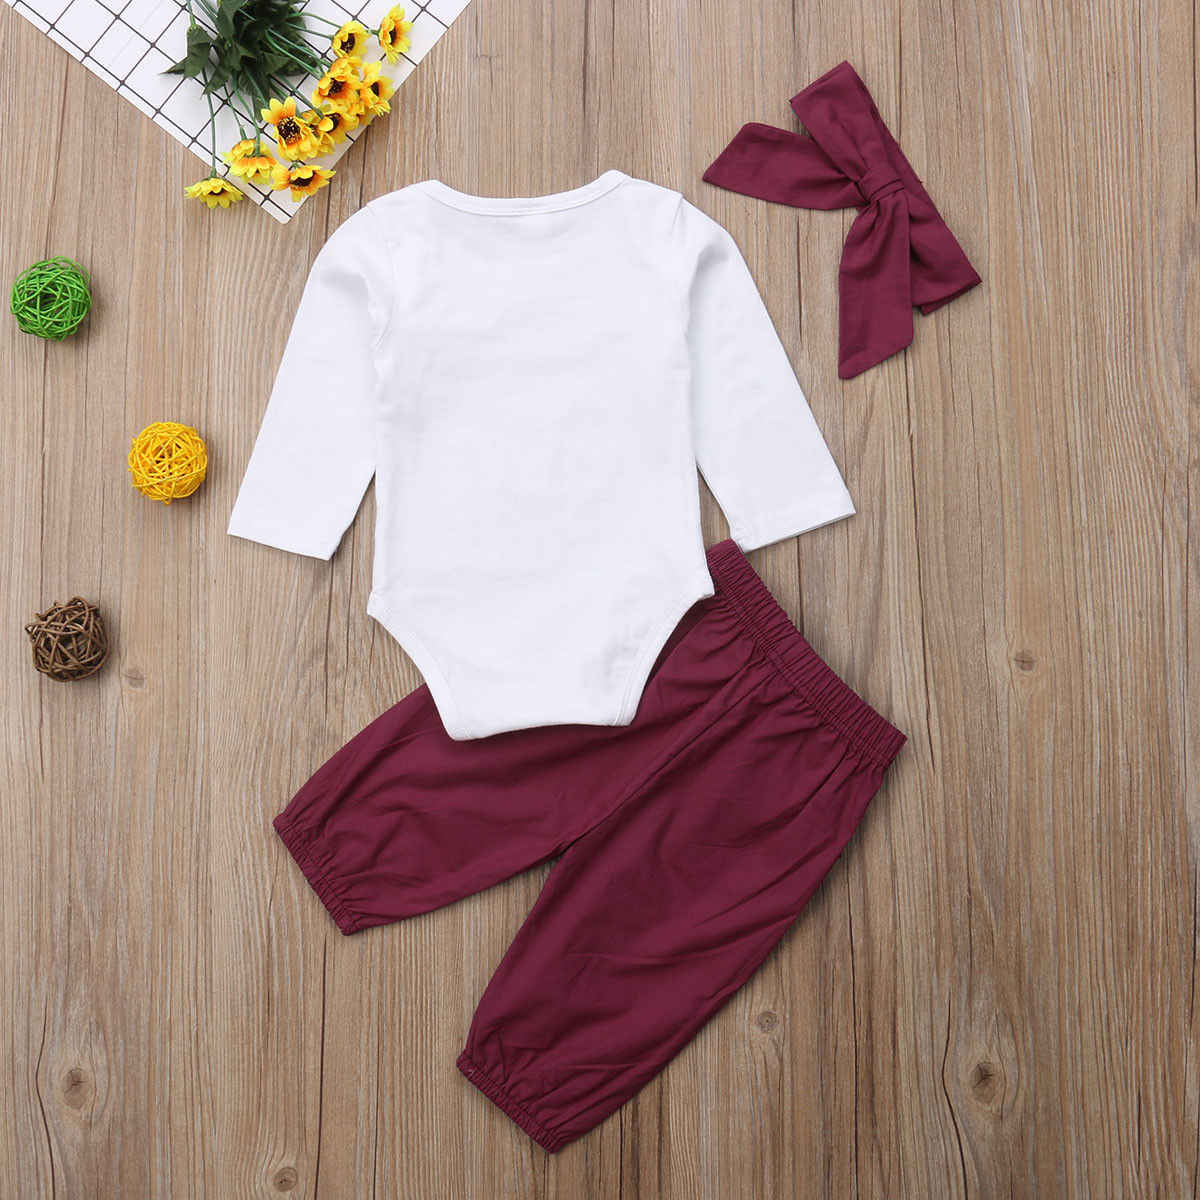 70c9e027a Detail Feedback Questions about Adorable Newborn Baby Girl Clothes ...